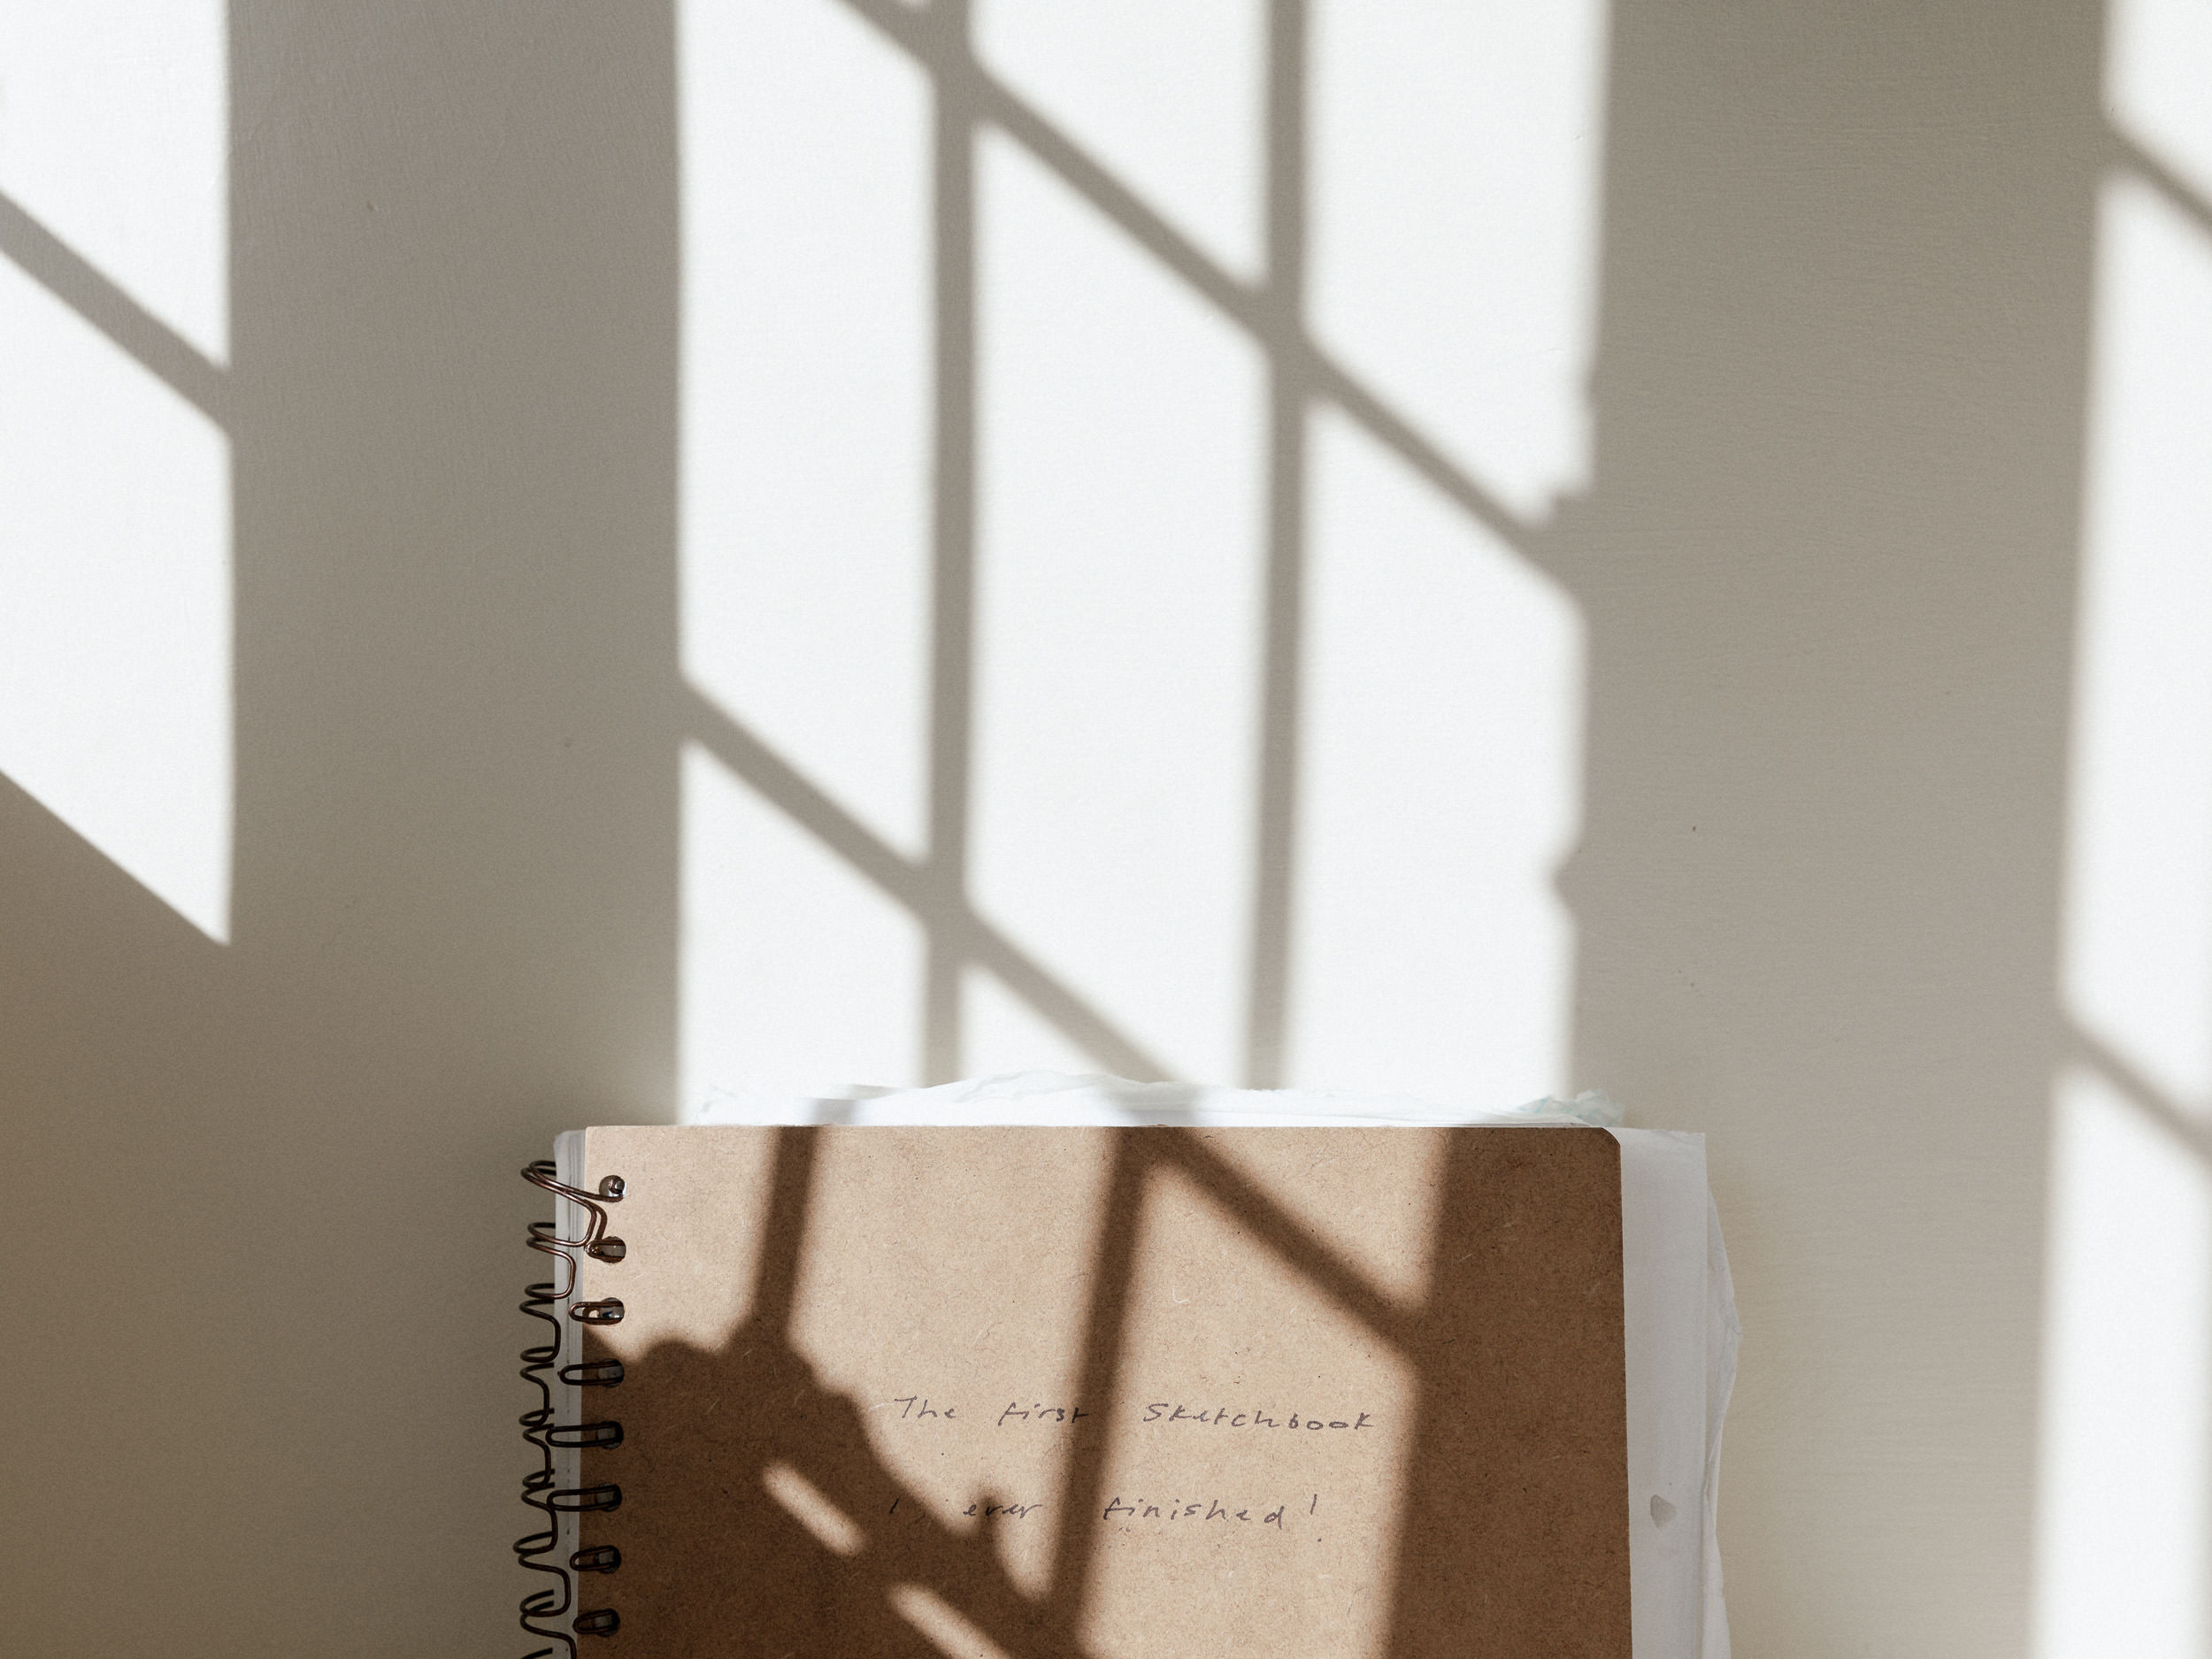 Photo of sketchbook against a wall with a shadow of a window